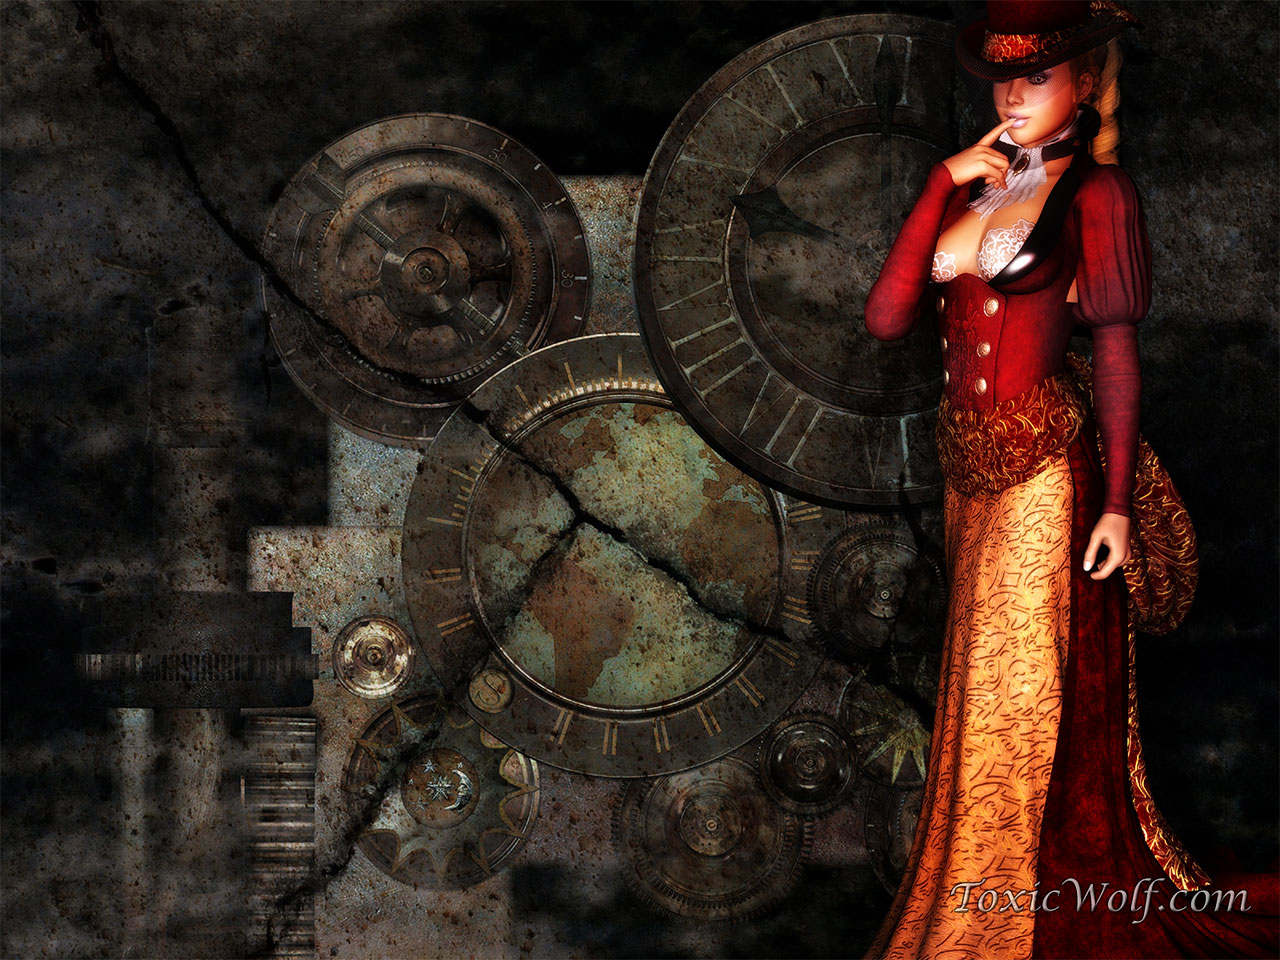 1000 images about Steampunk Steampunk 1280x960